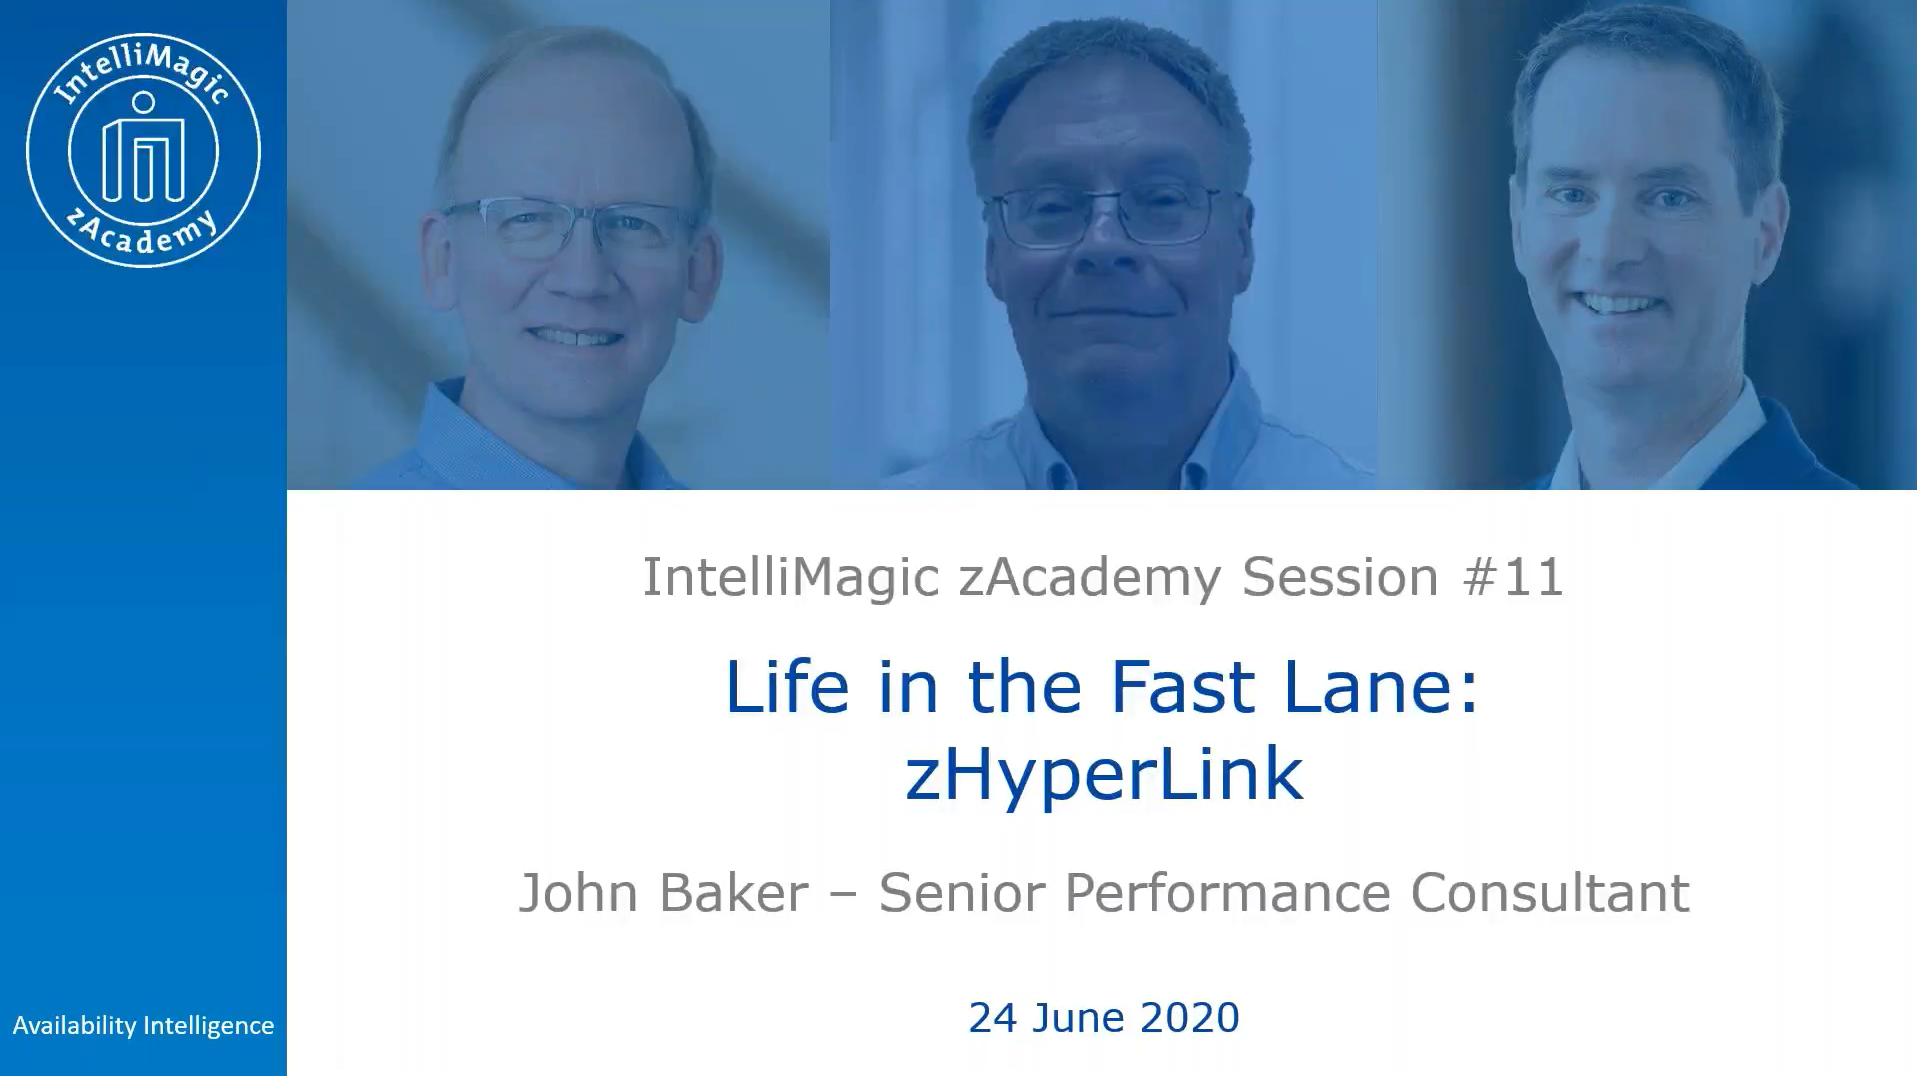 Life in the fast lane: zHyperLink